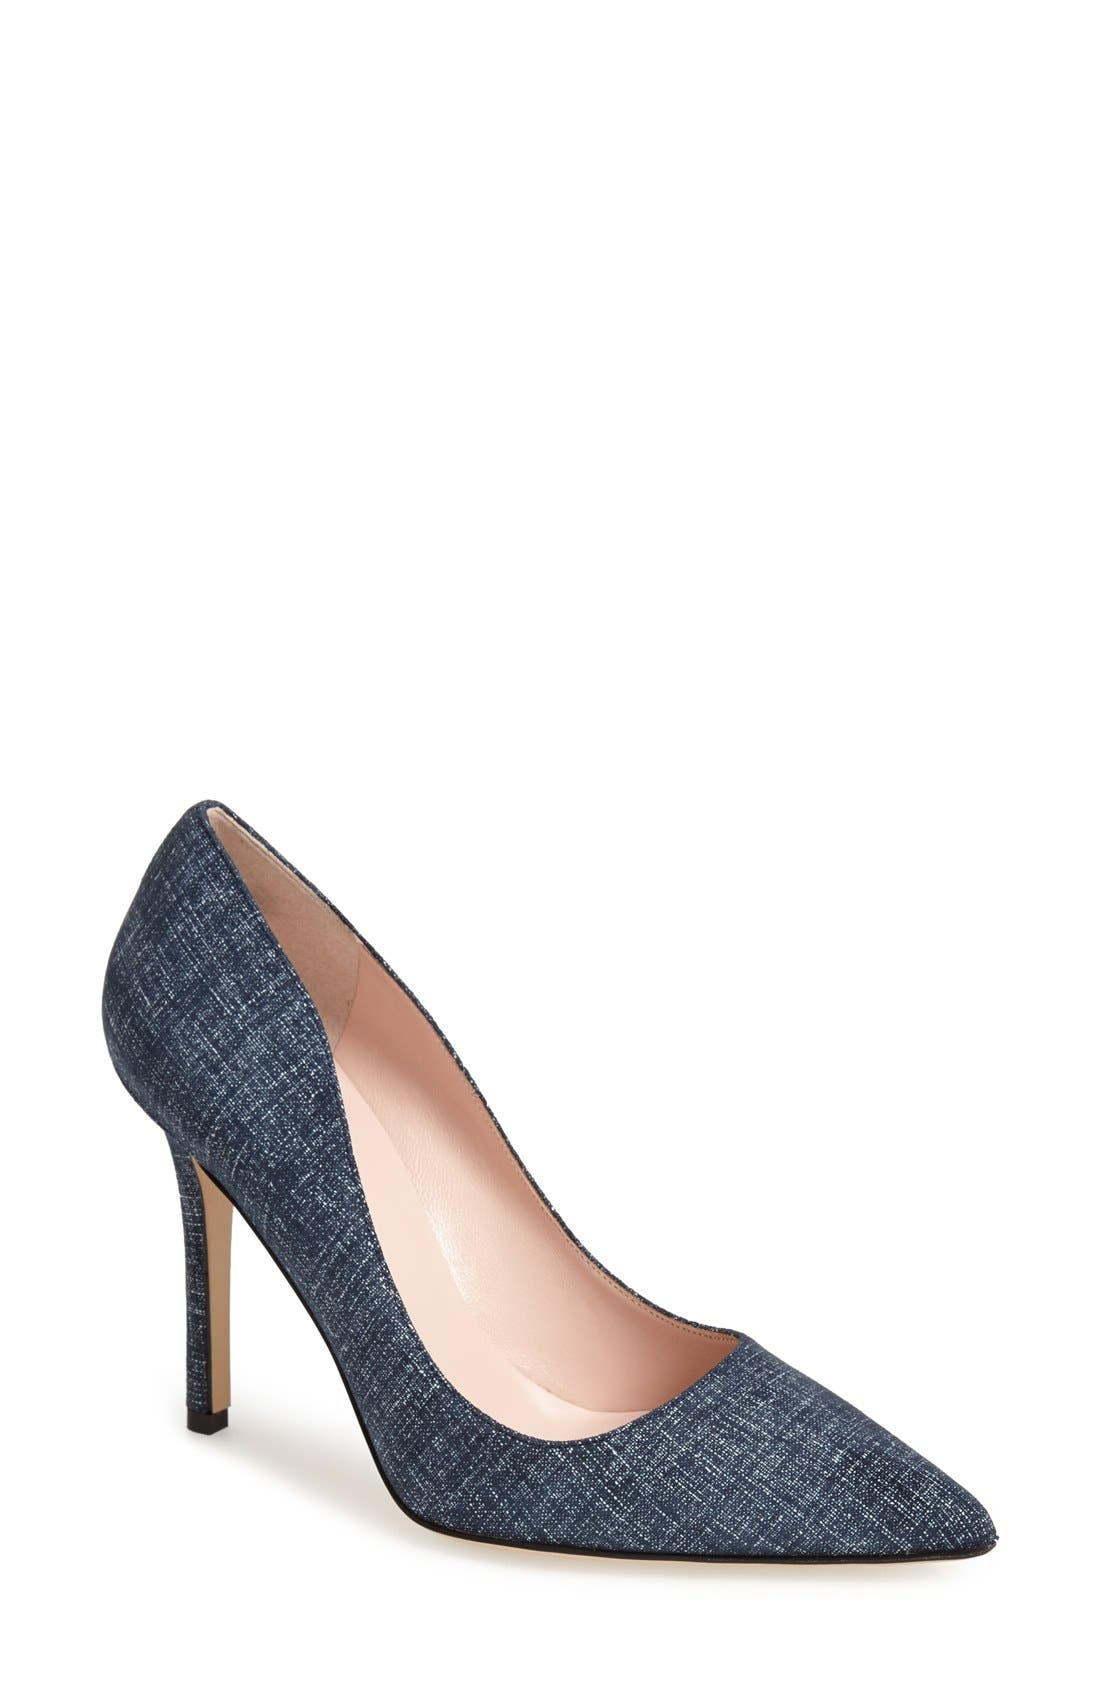 Alternate Image 1 Selected - kate spade new york 'larisa' pointy toe pump (Women)